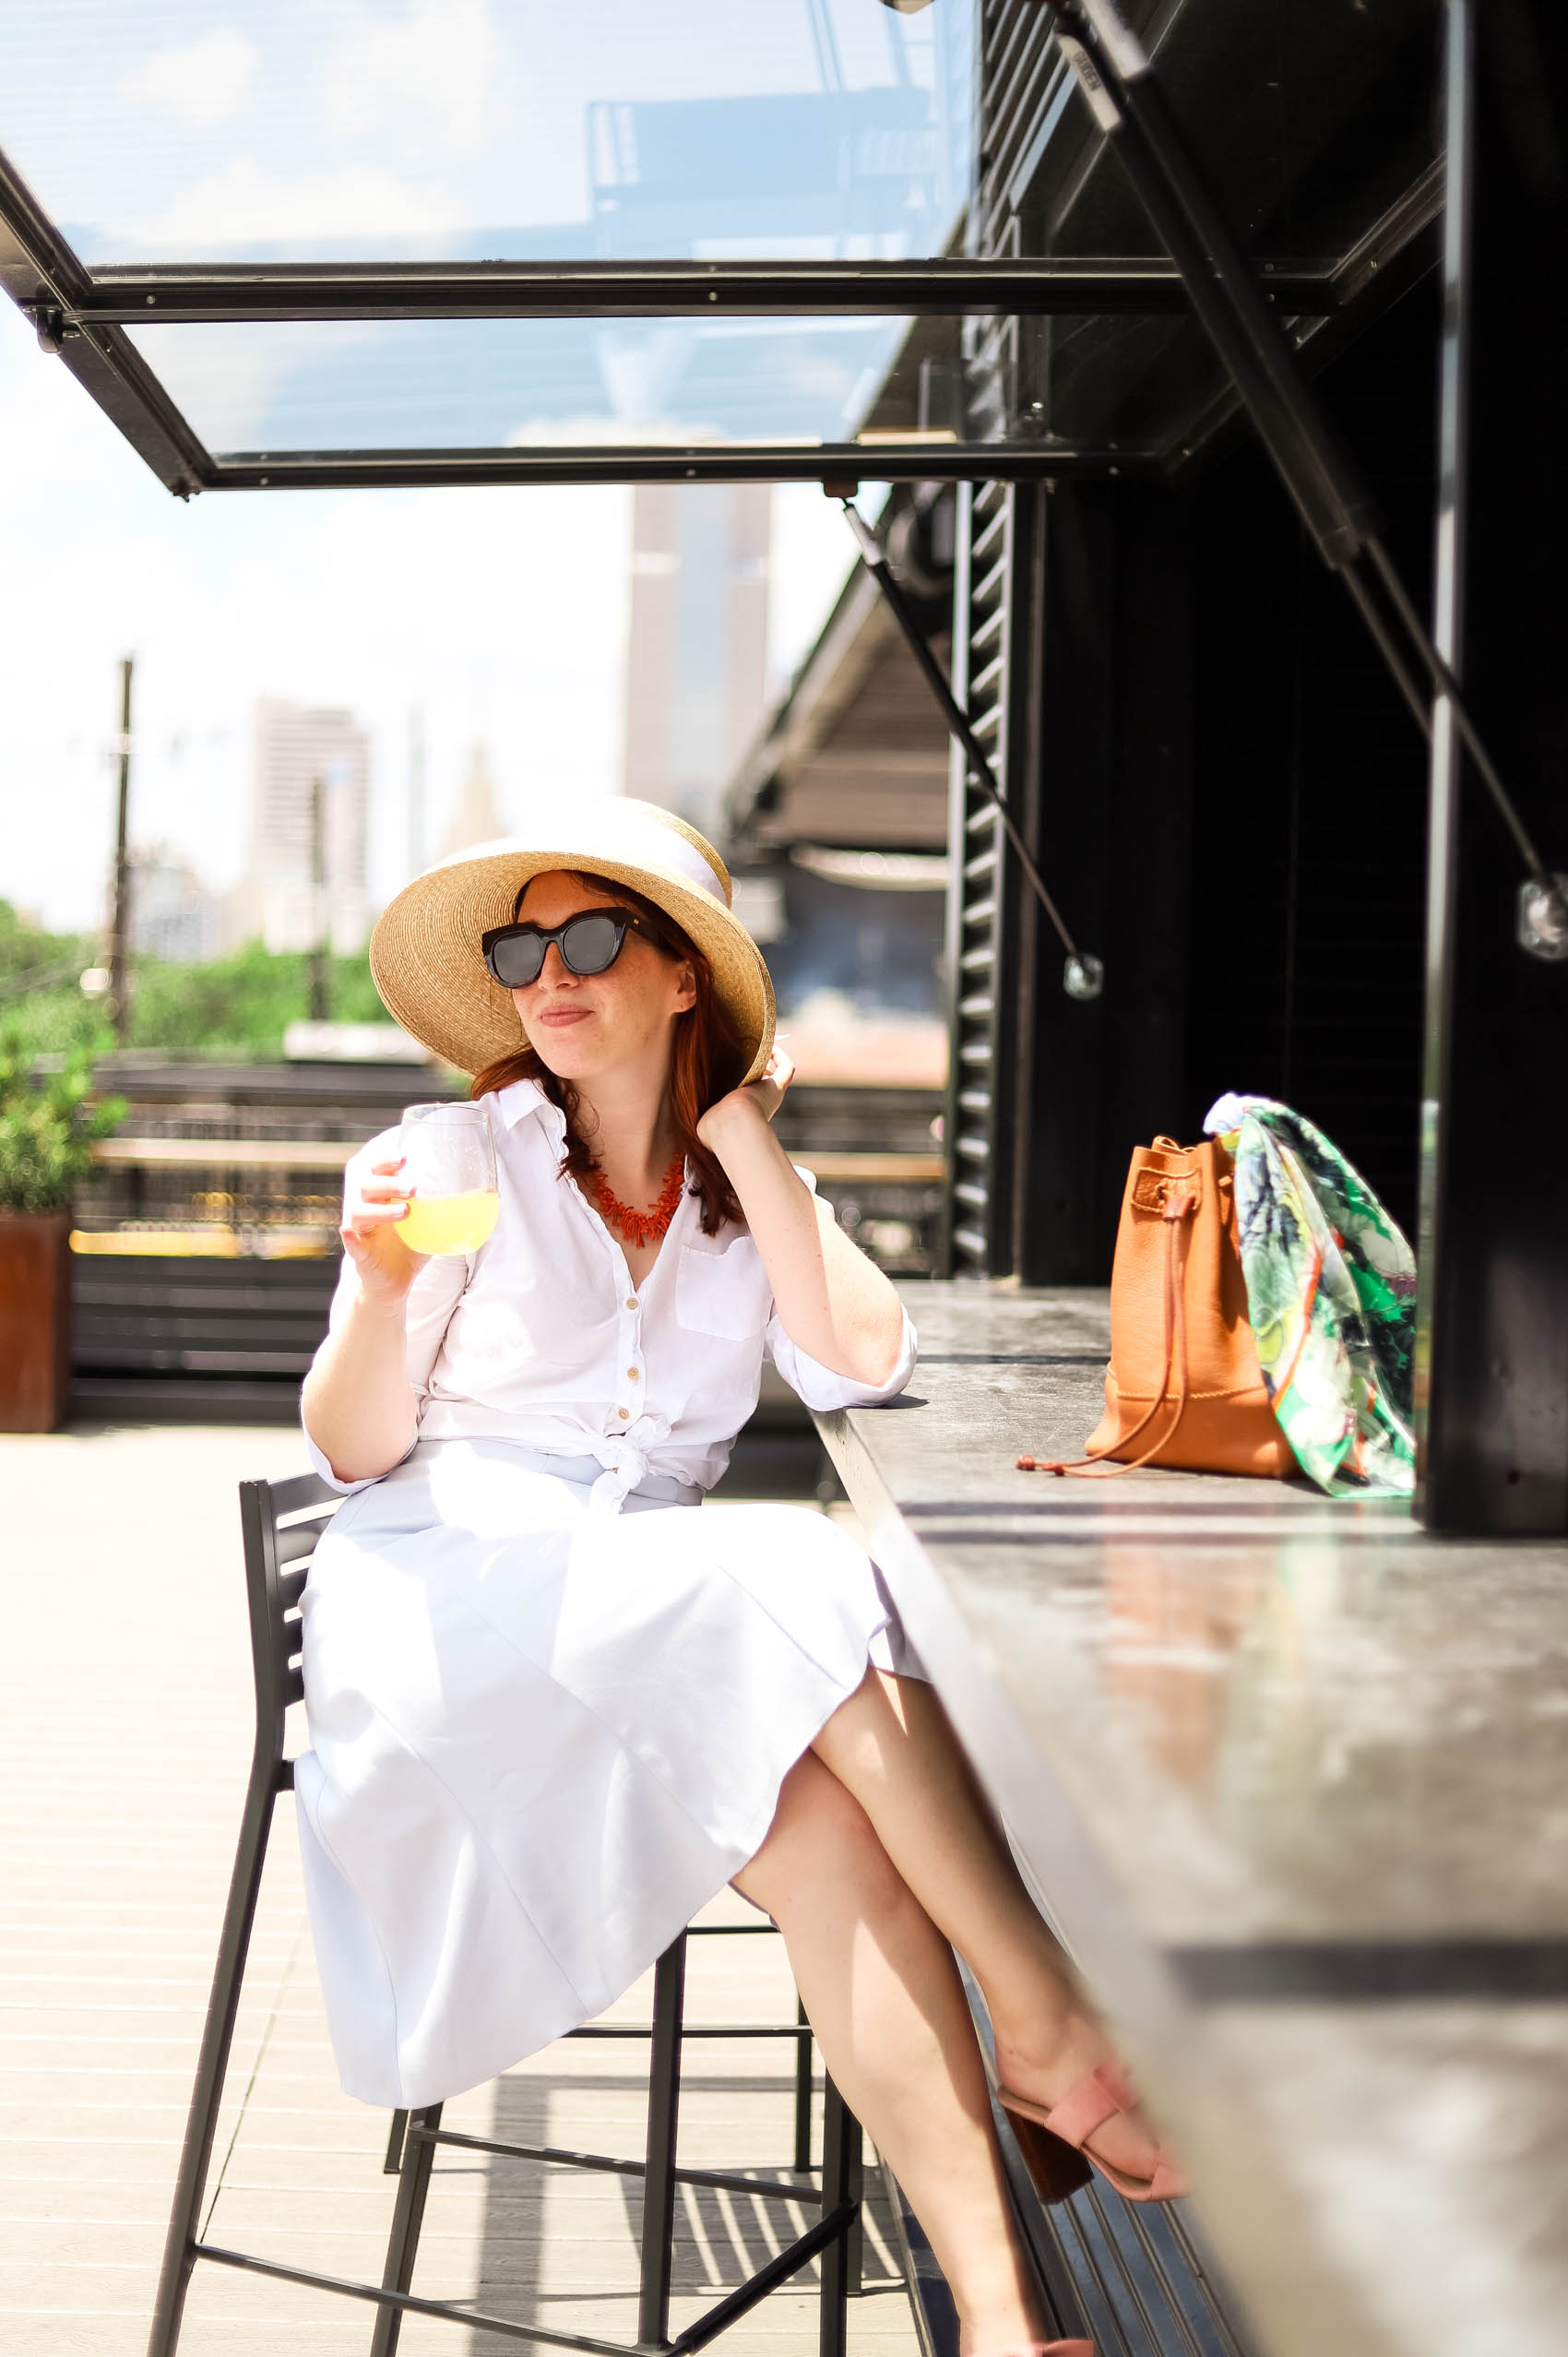 Blogger sharing story about how to mend a broken friendship while wearing summer outfit (knee-length skirt, J.Crew linen shirt, and bow hat).